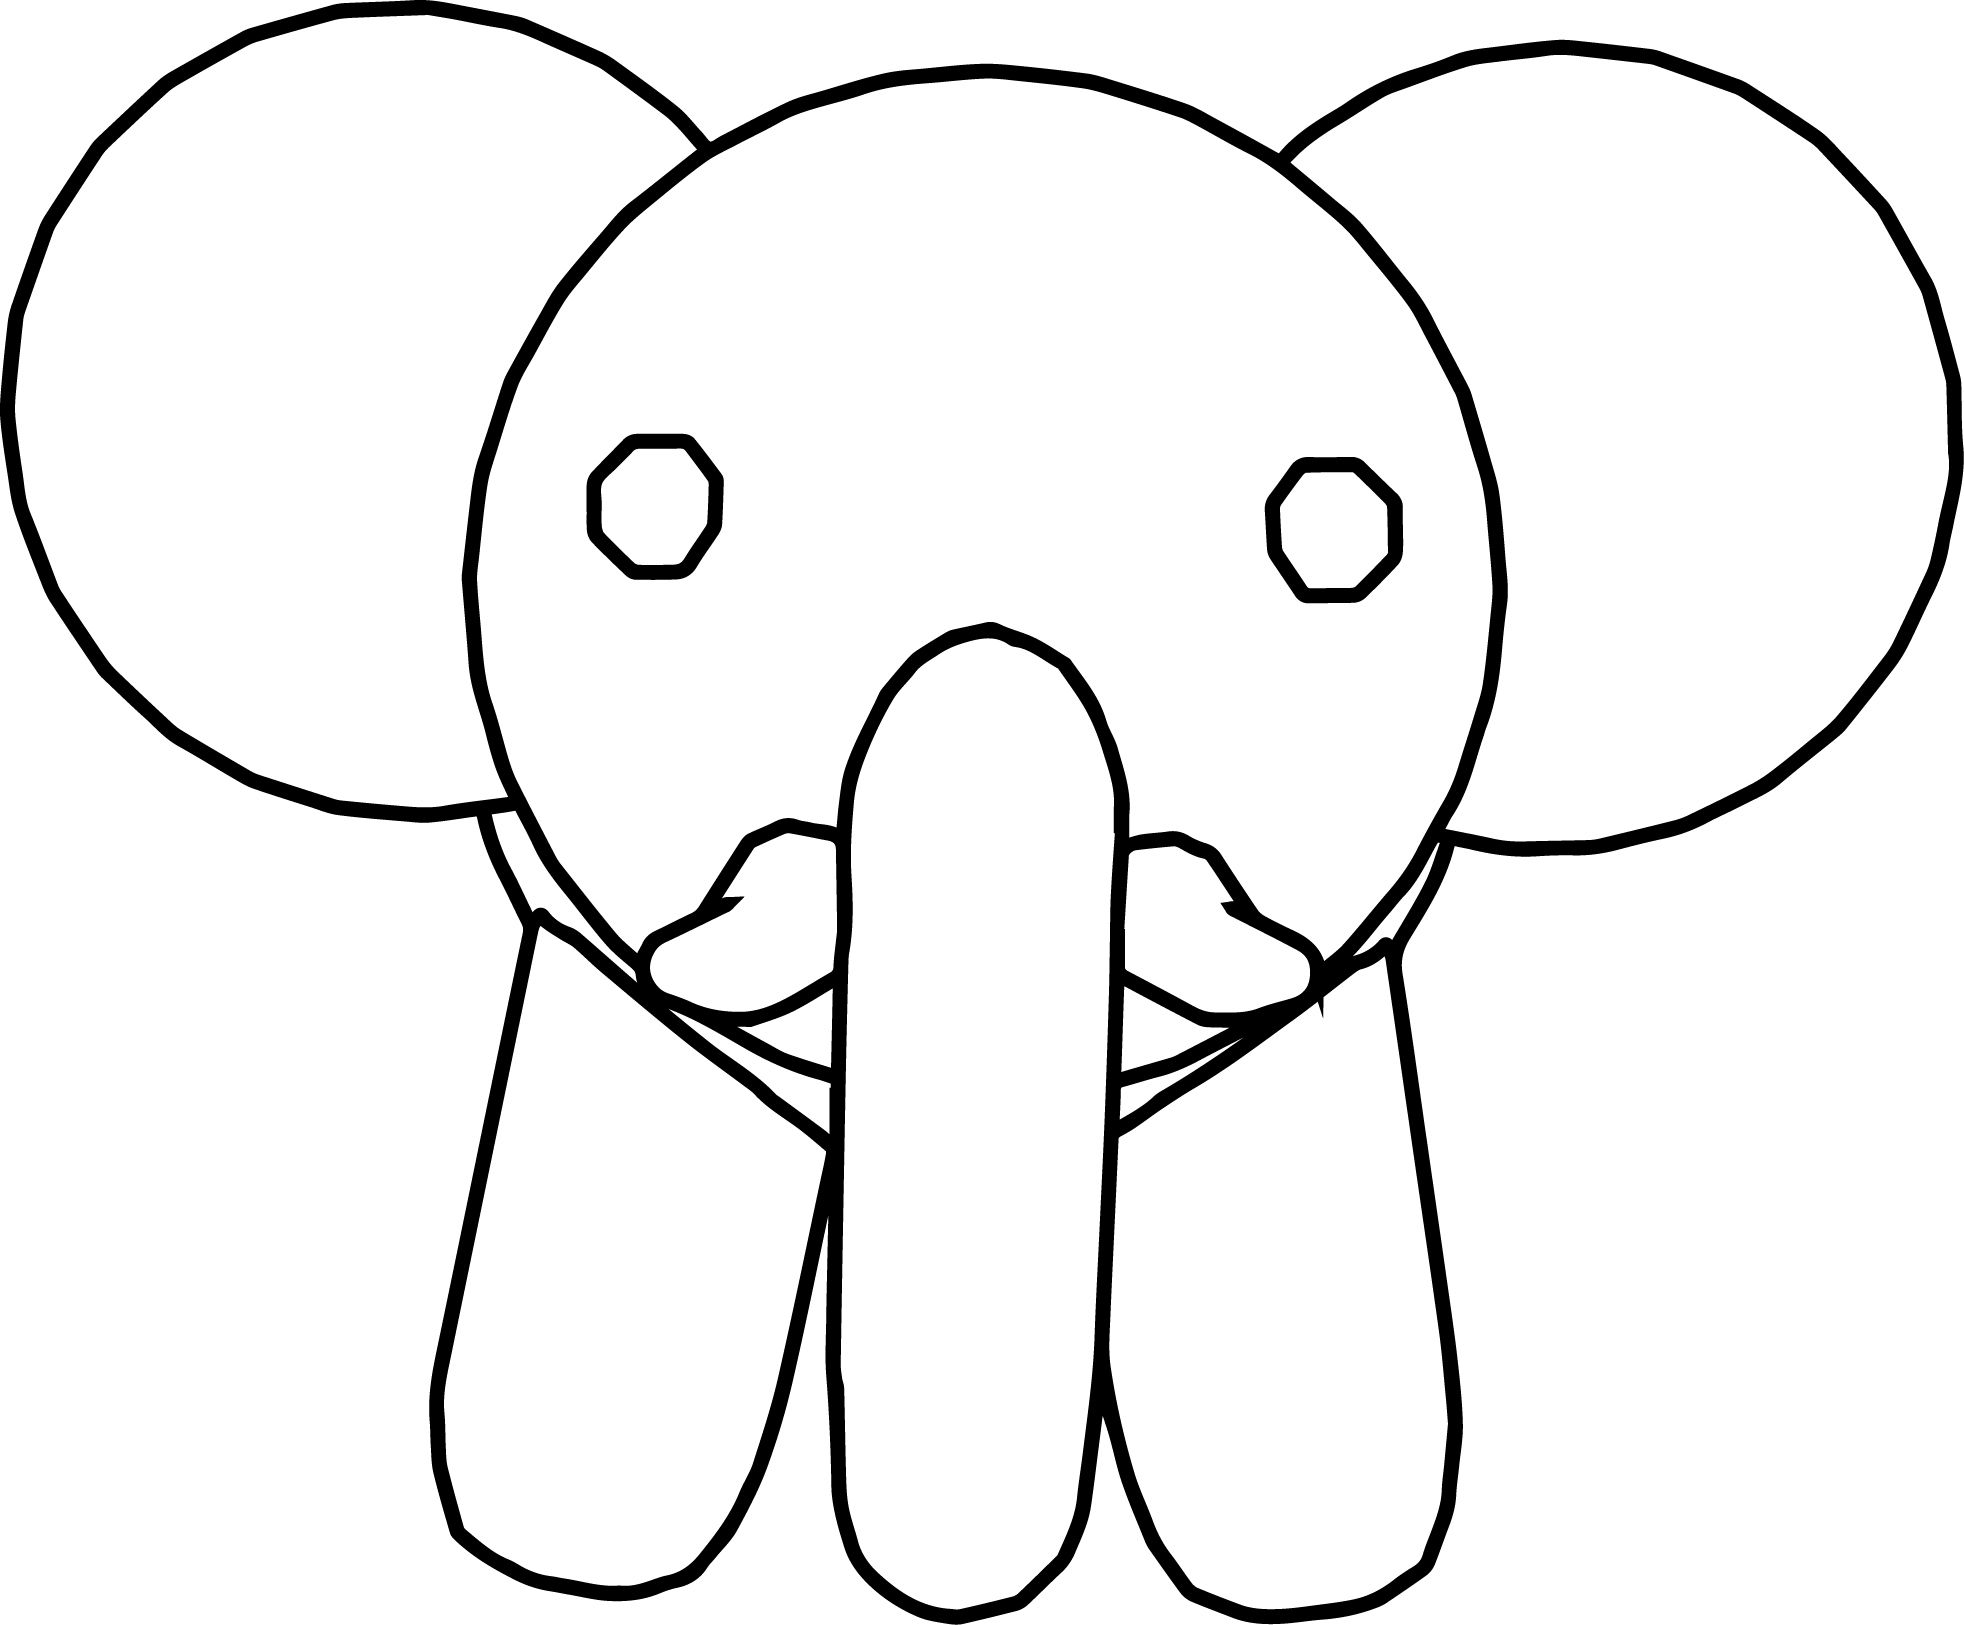 Awesome Elephant Face Front View Coloring Page Atividades Para